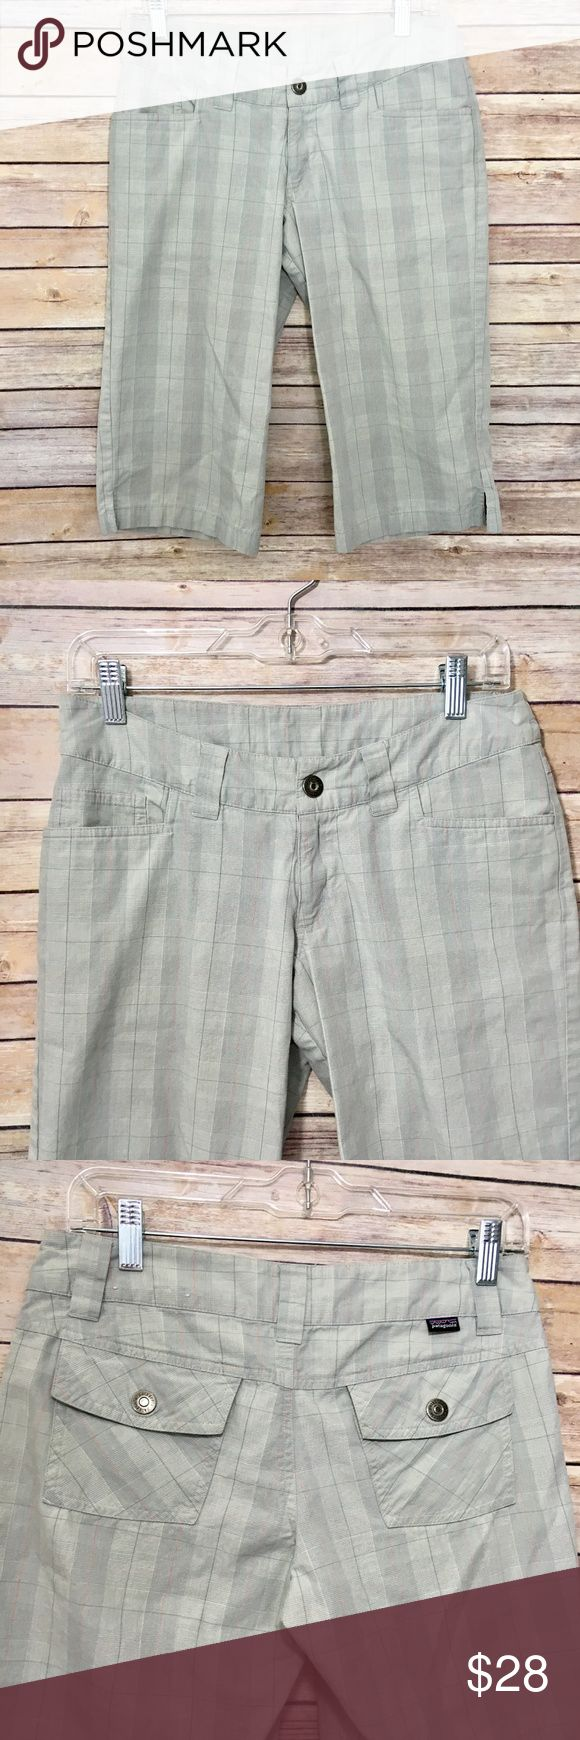 """Patagonia Organic Cotton Walking Shorts NWOT Patagonia women's walking/bermuda shorts (or capris depending on your height!) in gray plaid. Great for hiking, walking, golfing or being outdoors in general. 100% organic cotton. Zipper and double button fastener, 2 front/2 back pockets. 14.5"""" across waist laying flat. 16"""" inseam. In excellent condition. No trades please! Offers welcome. Patagonia Shorts Bermudas"""